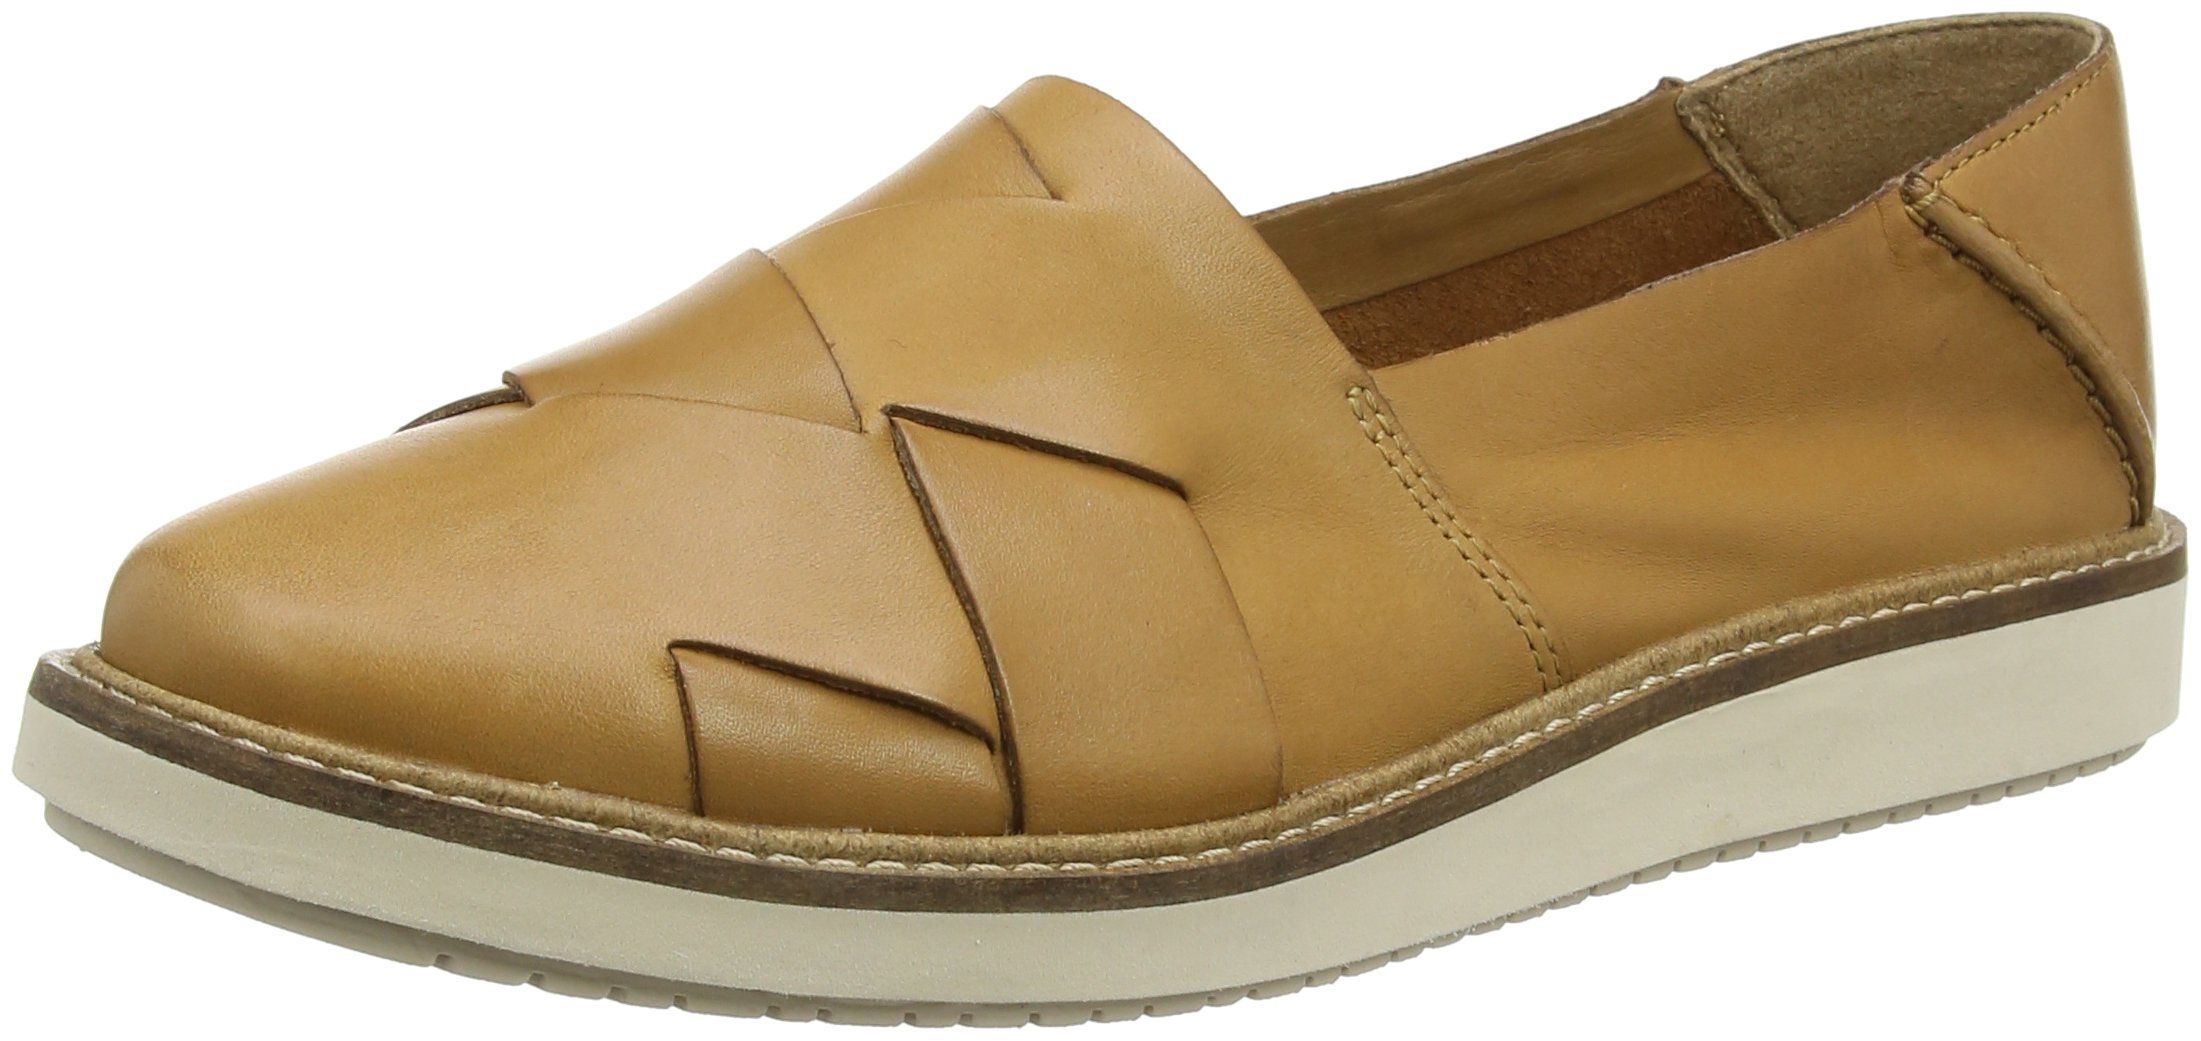 Tan37 Glick Clarks FemmeMarronlight HarvestBallerines Eu N0OPXk8wn